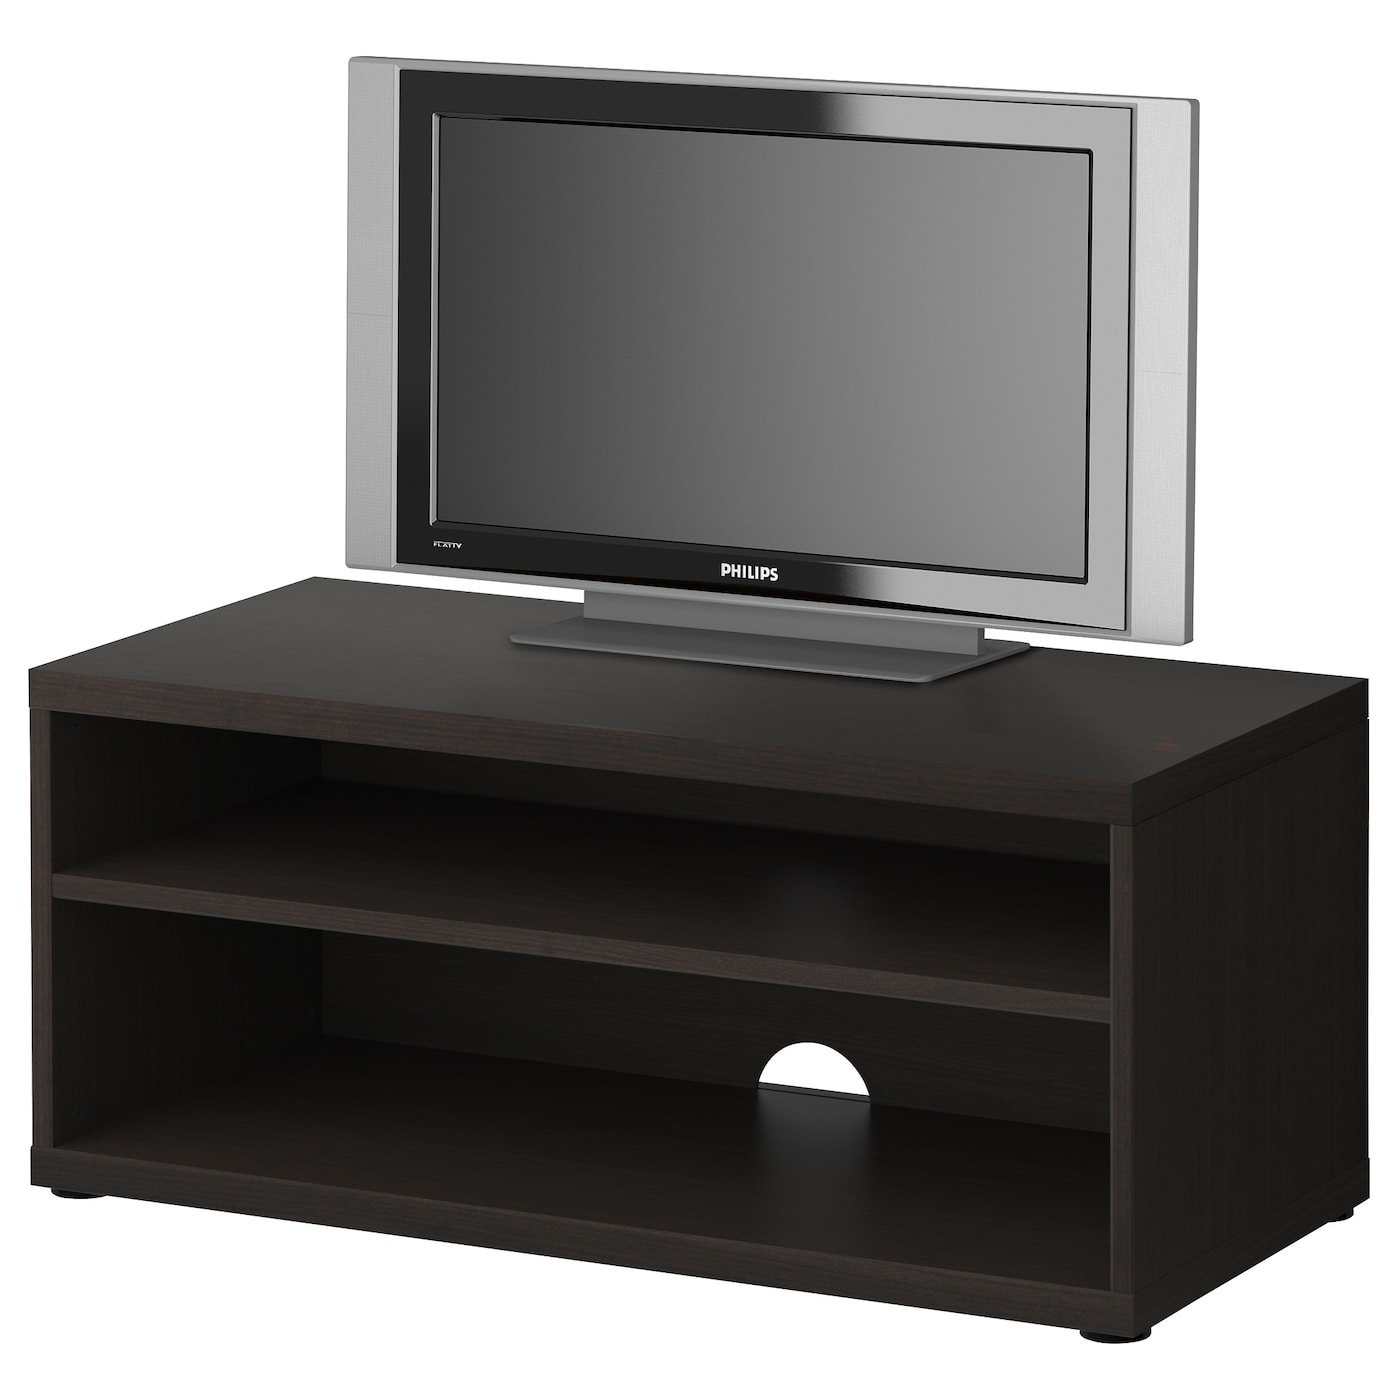 IKEA MOSJ TV bench 1 adjustable shelf; adjust spacing according to your  own needs.